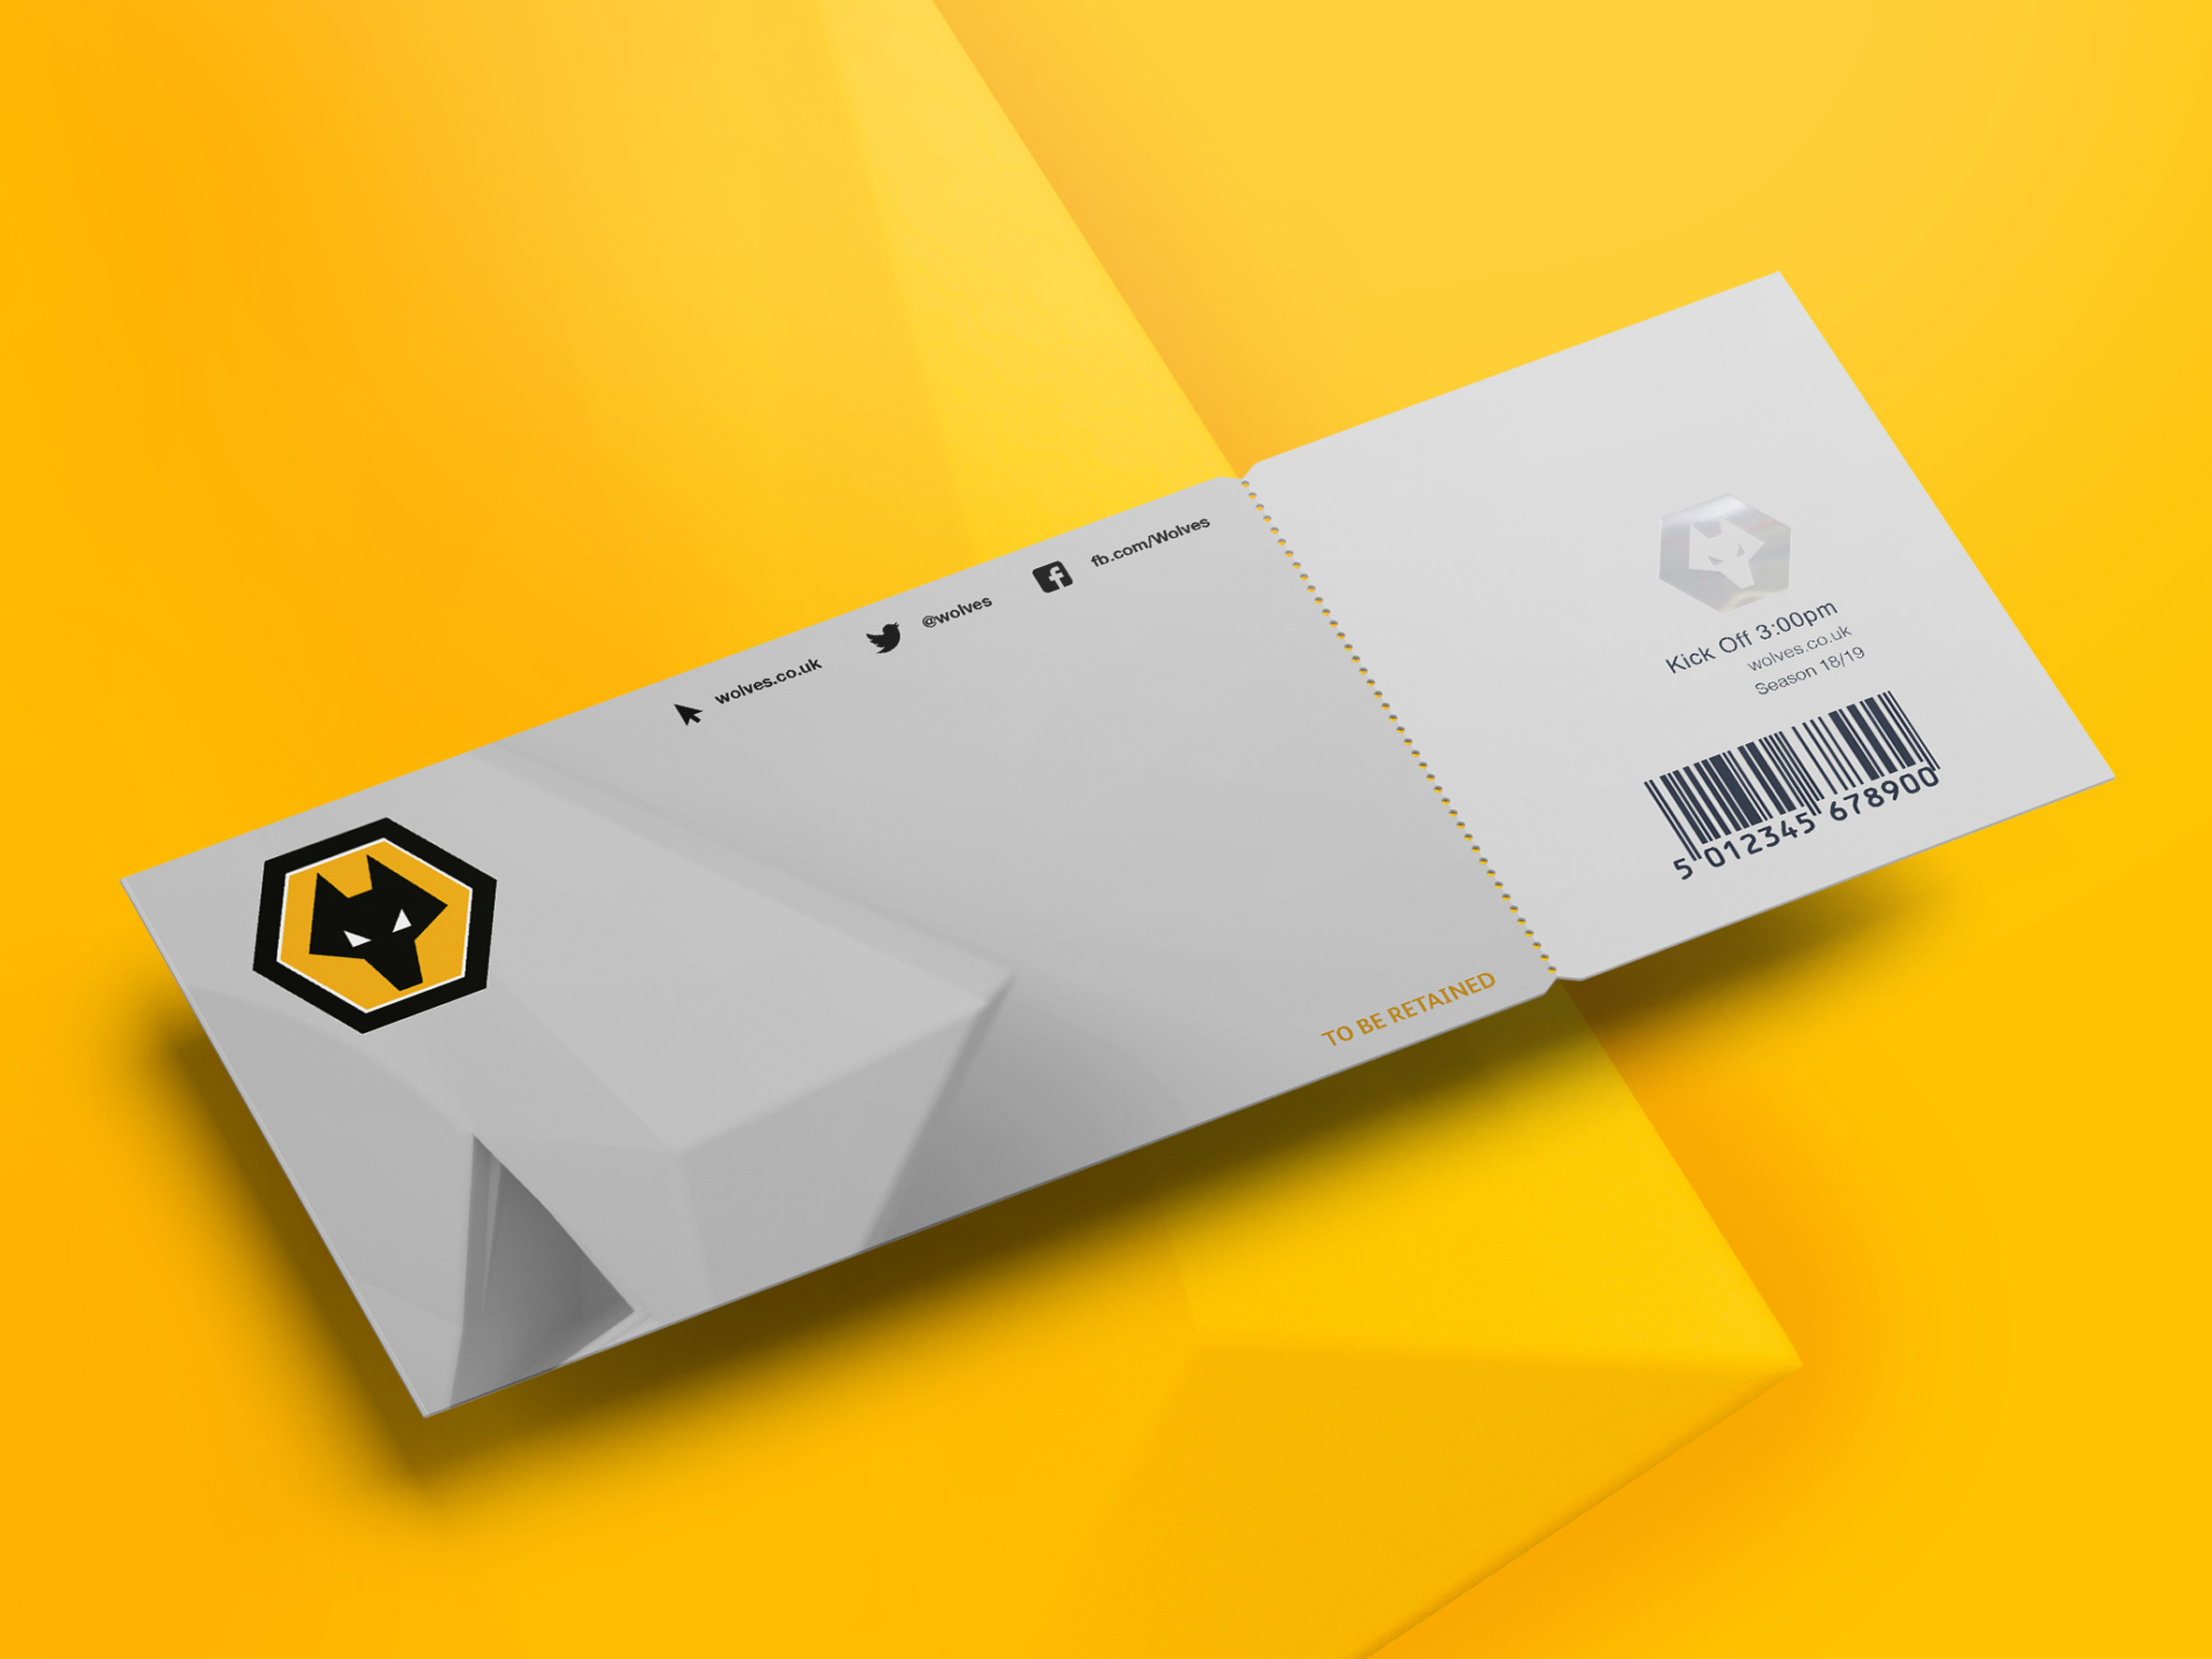 d4187fb0ea1 Wolves football club unveils new visual identity featuring 3D wolf head